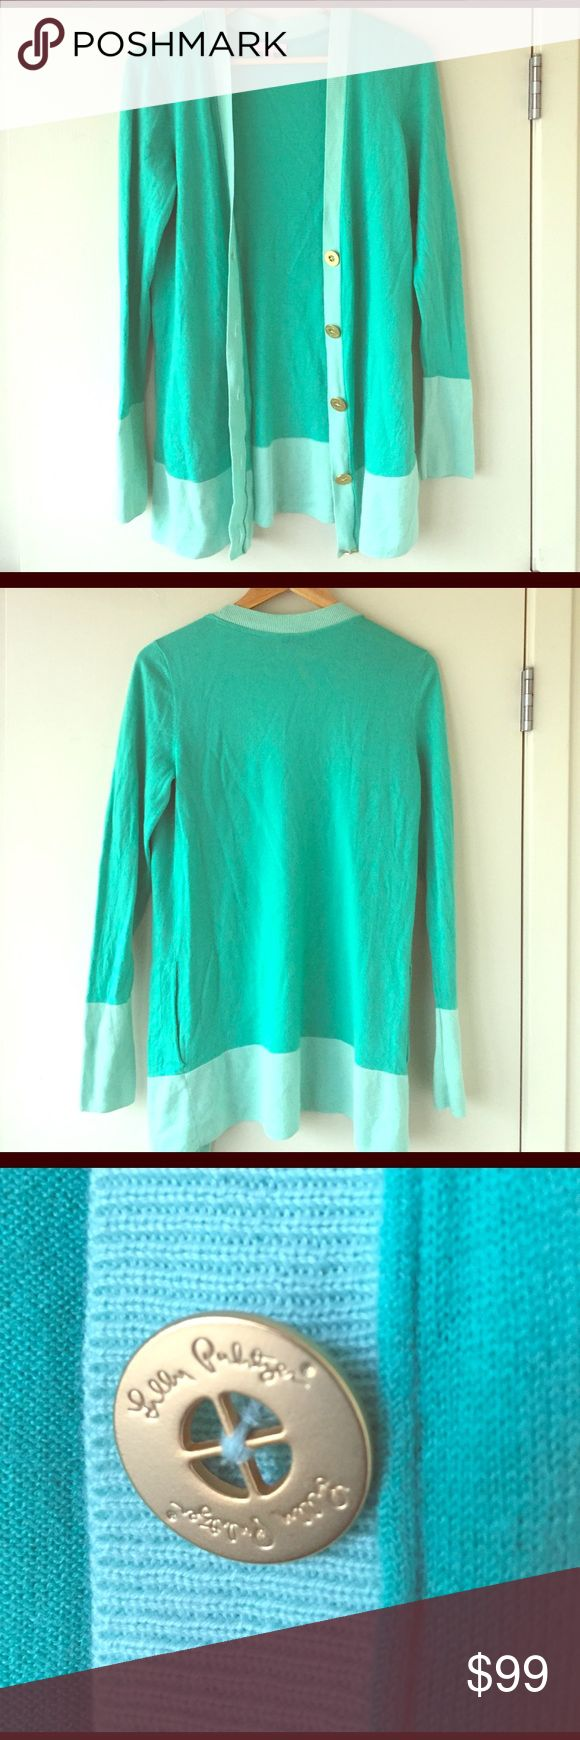 Lilly Pulitzer turquoise cardigan Lightly worn. Lilly Pulitzer Sweaters Cardigans